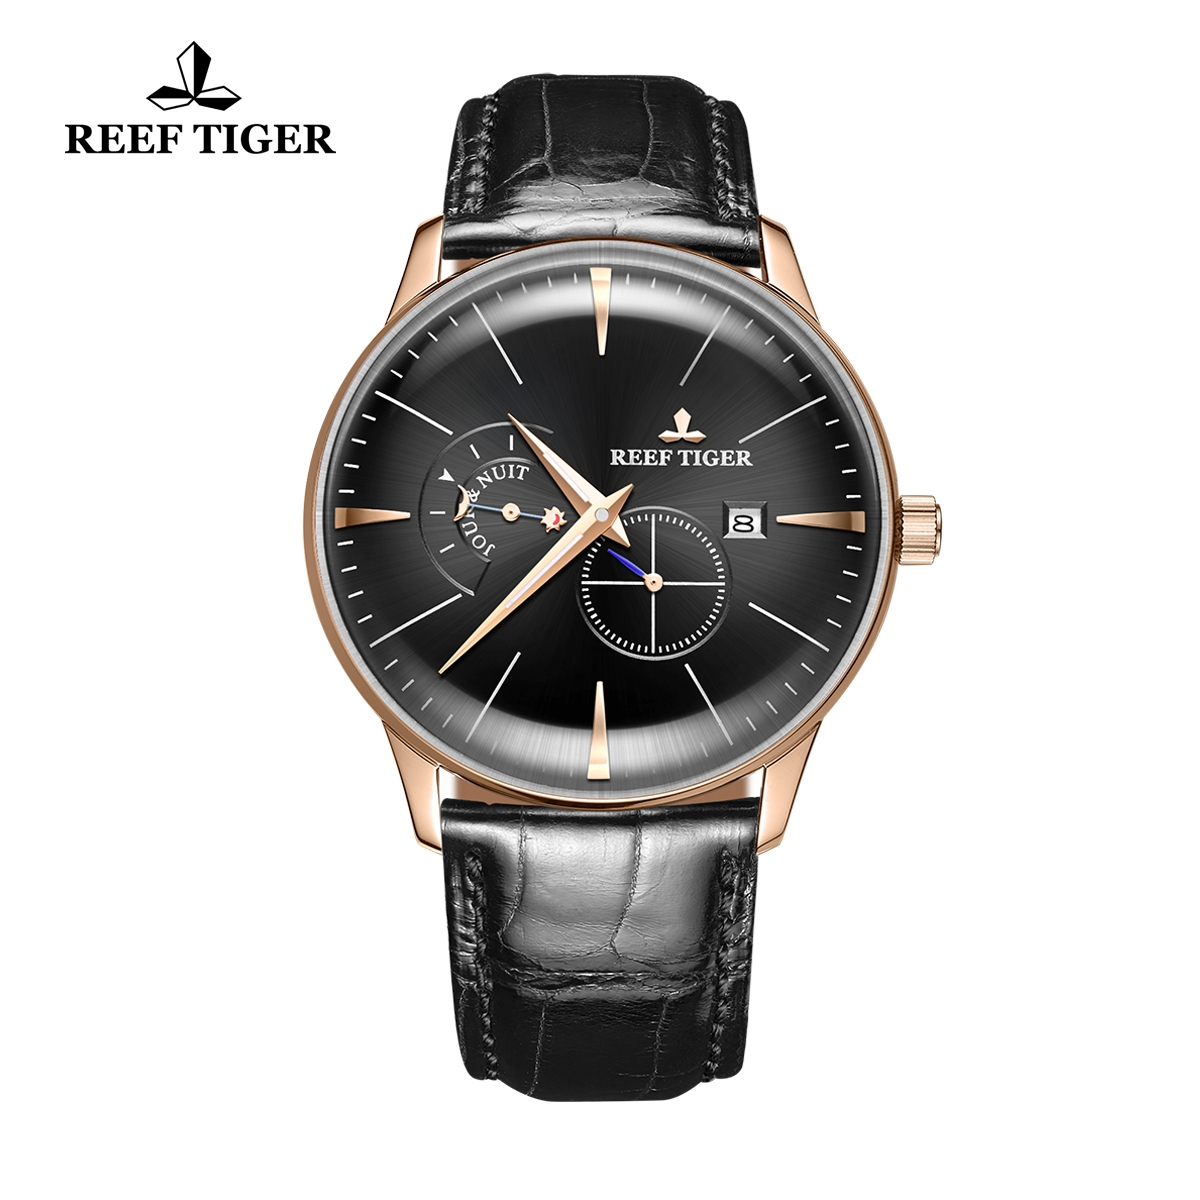 Reef Tiger Classic Artisan Men's Fashion Watch Black Dial Leather Strap Automatic Watches RGA8219-PBB